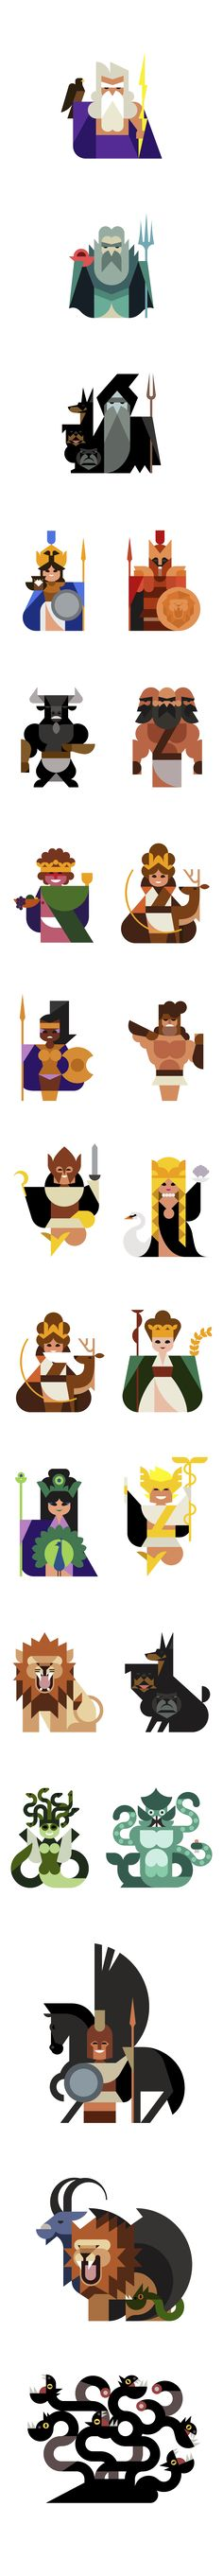 "The Oh my God Exhibition takes a geometric look at character design. In ancient Greece they had something better than superheroes; they had gods, each with their own powers, weaknesses, backstory and followers. By ""Hey"" on Behance http://www.behance.net/gallery/Oh-my-god/8977355"